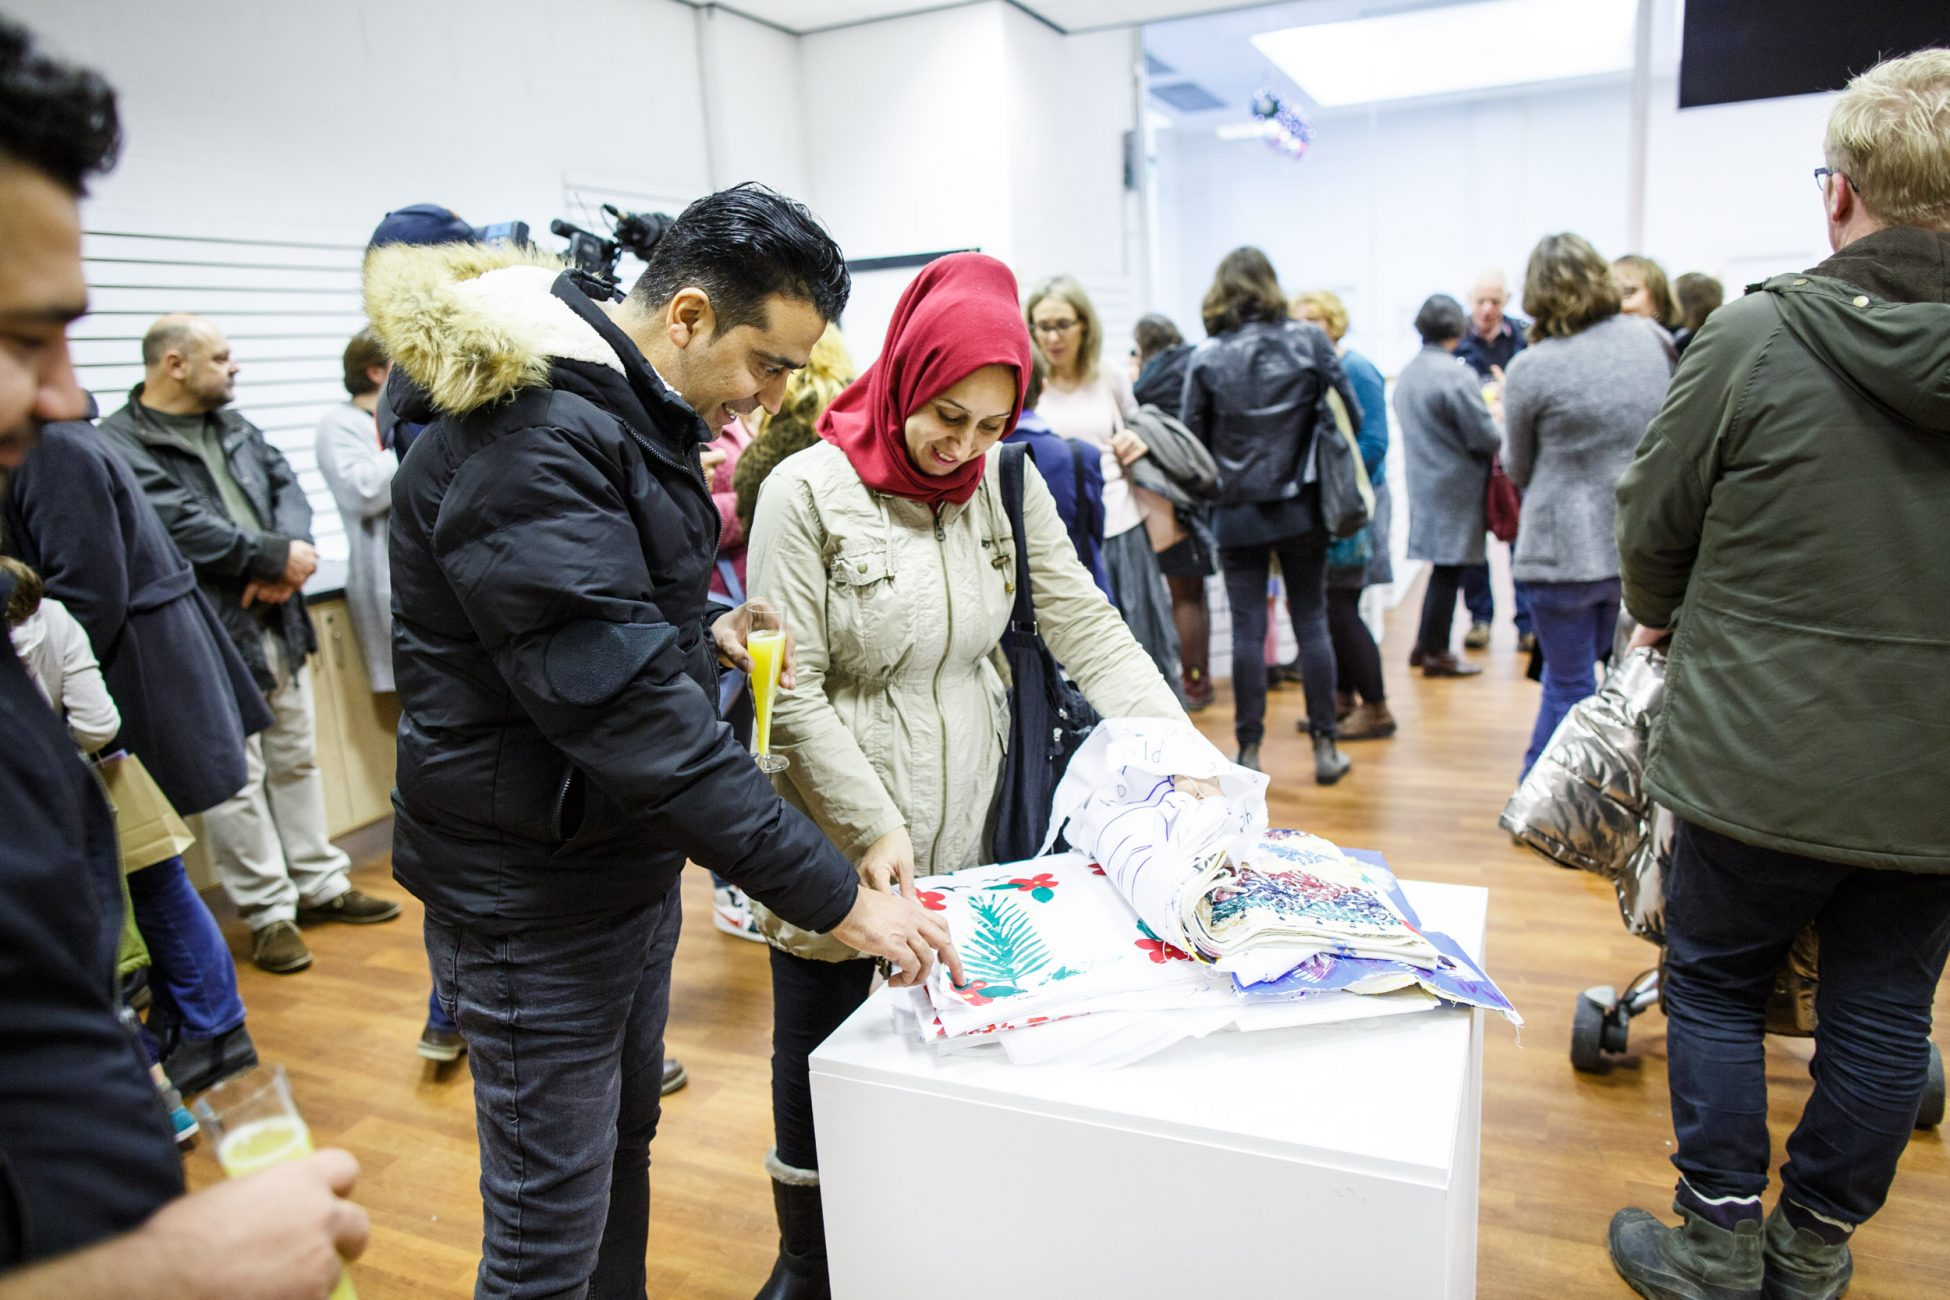 Photo in a gallery showing a book made up of colourfully decorated squares of fabric open on a plinth. A man in a black coat and jeans and a woman in a beige coat and red hijab are looking through the book and admiring the designs.